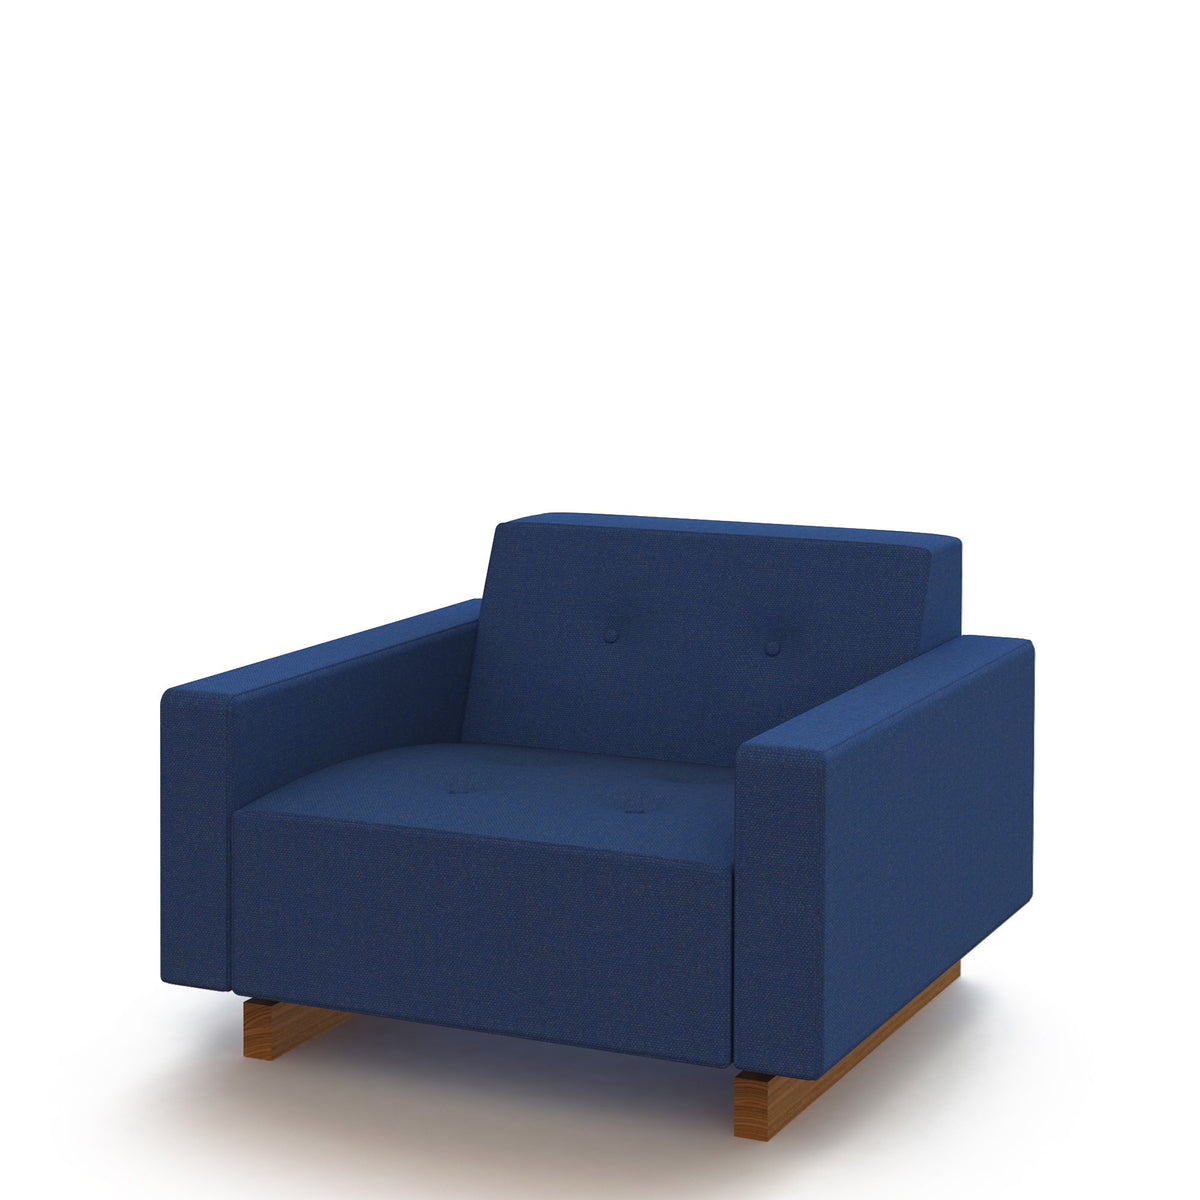 Hitch Mylius Office HM46 Holborn Abbey Armchair